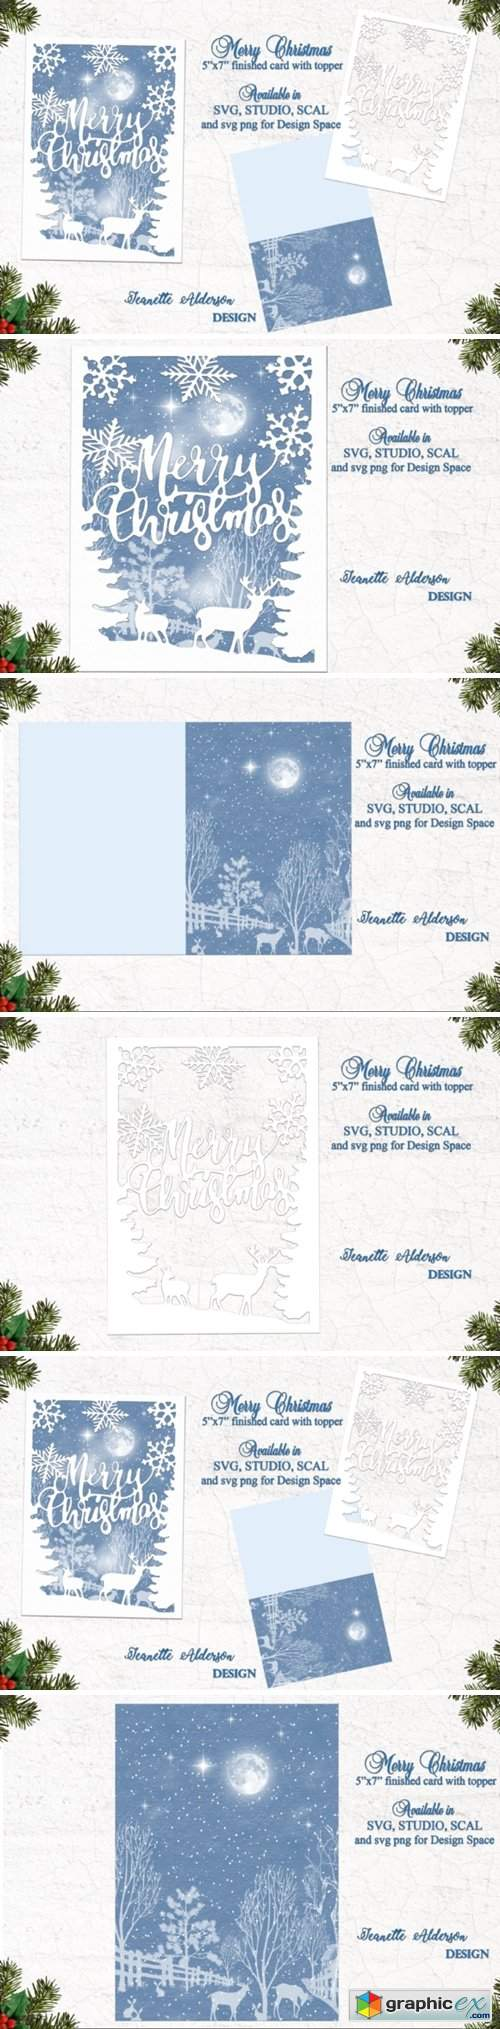 Merry Christmas Reindeer Snowflake Card